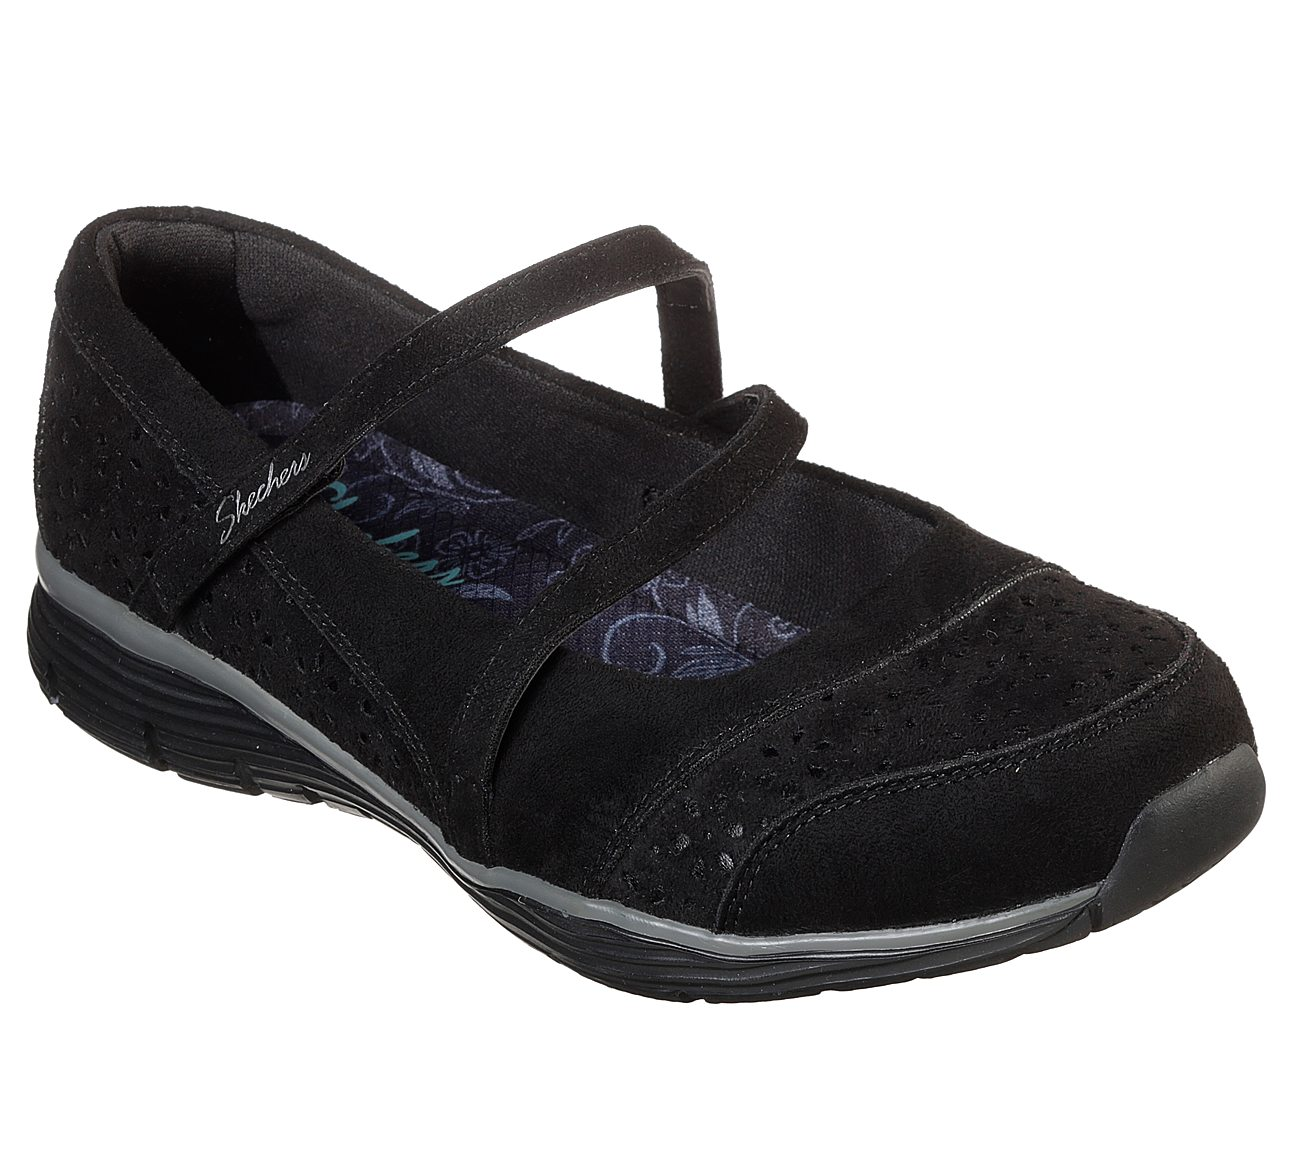 Skechers Womens Seager-Frills /& Thrills Fabric Closed Toe Mary Jane Flats